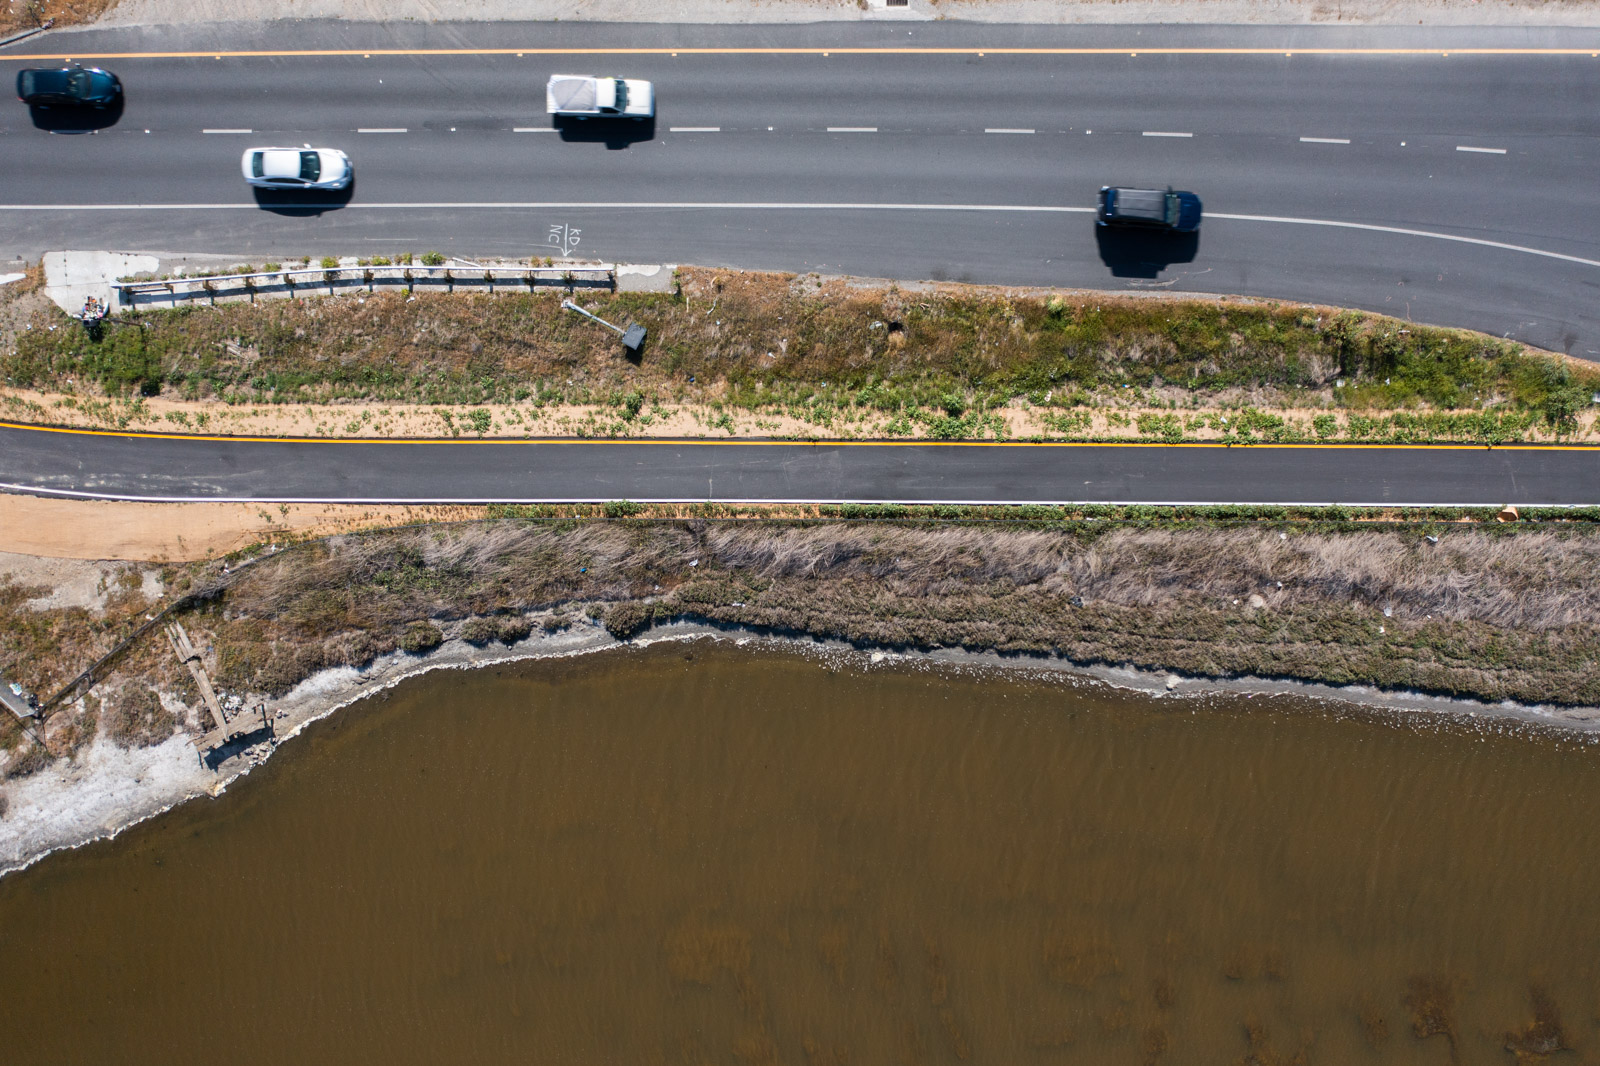 an aerial view of a bridge with a road with cars driving across water